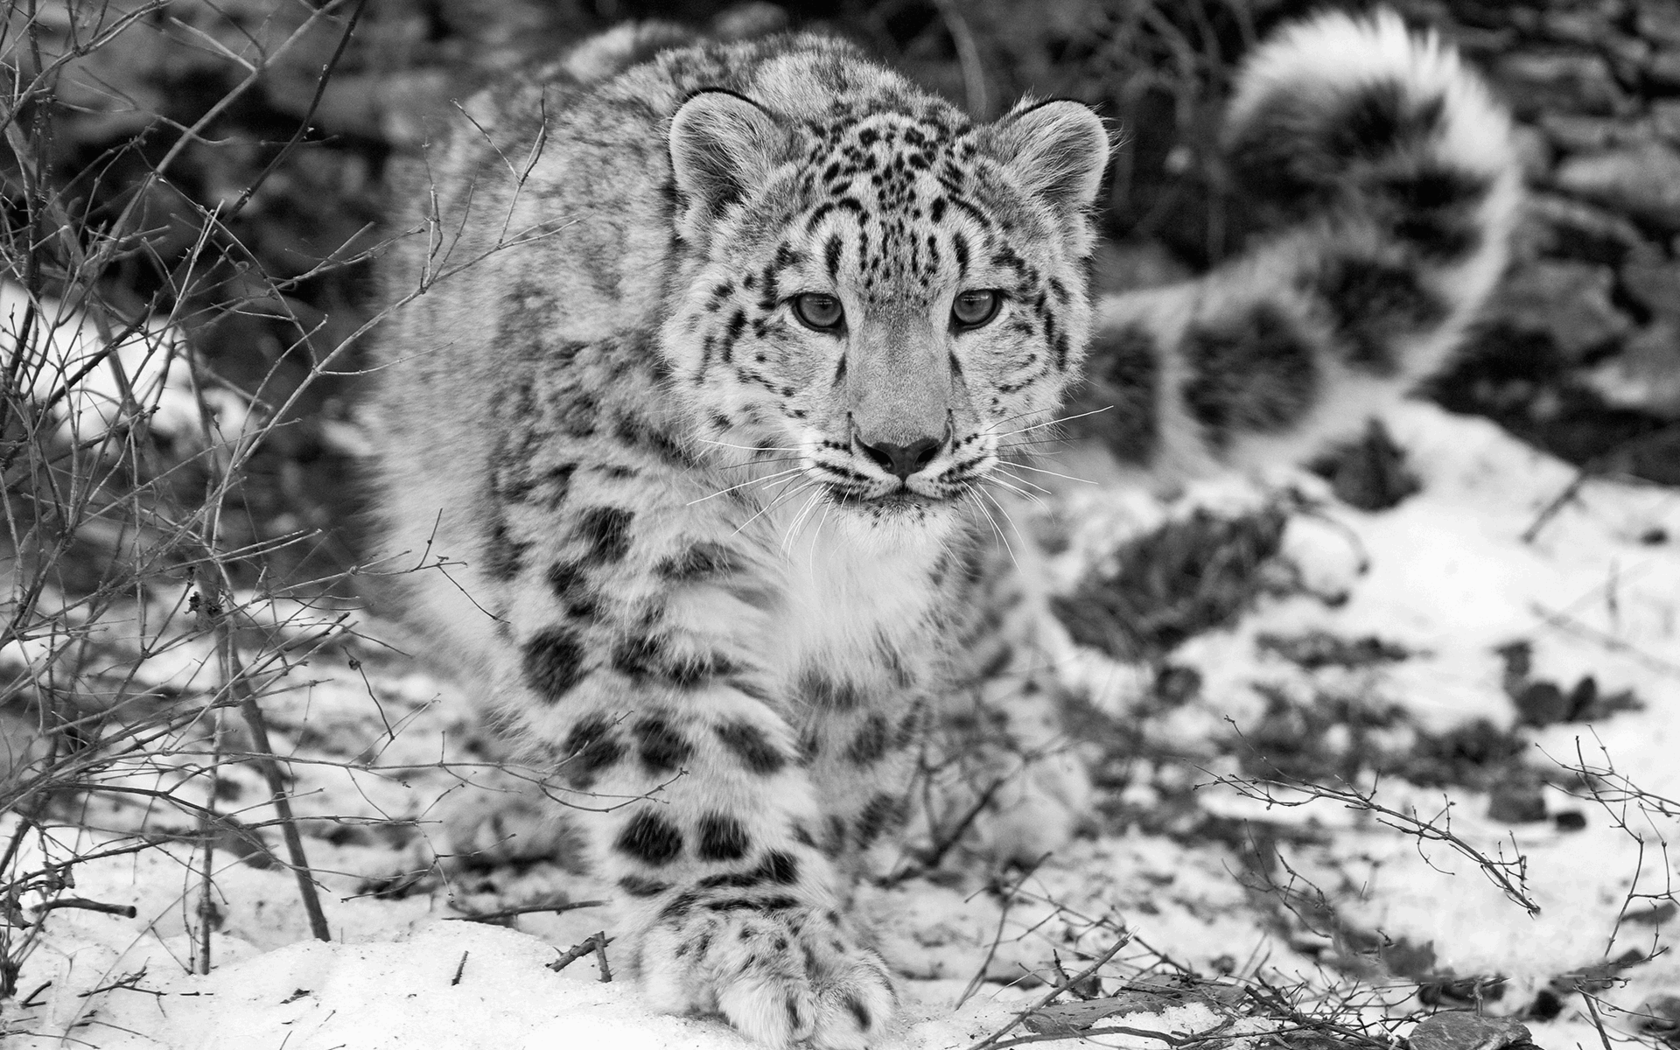 Snow Leopard widescreen for desktop